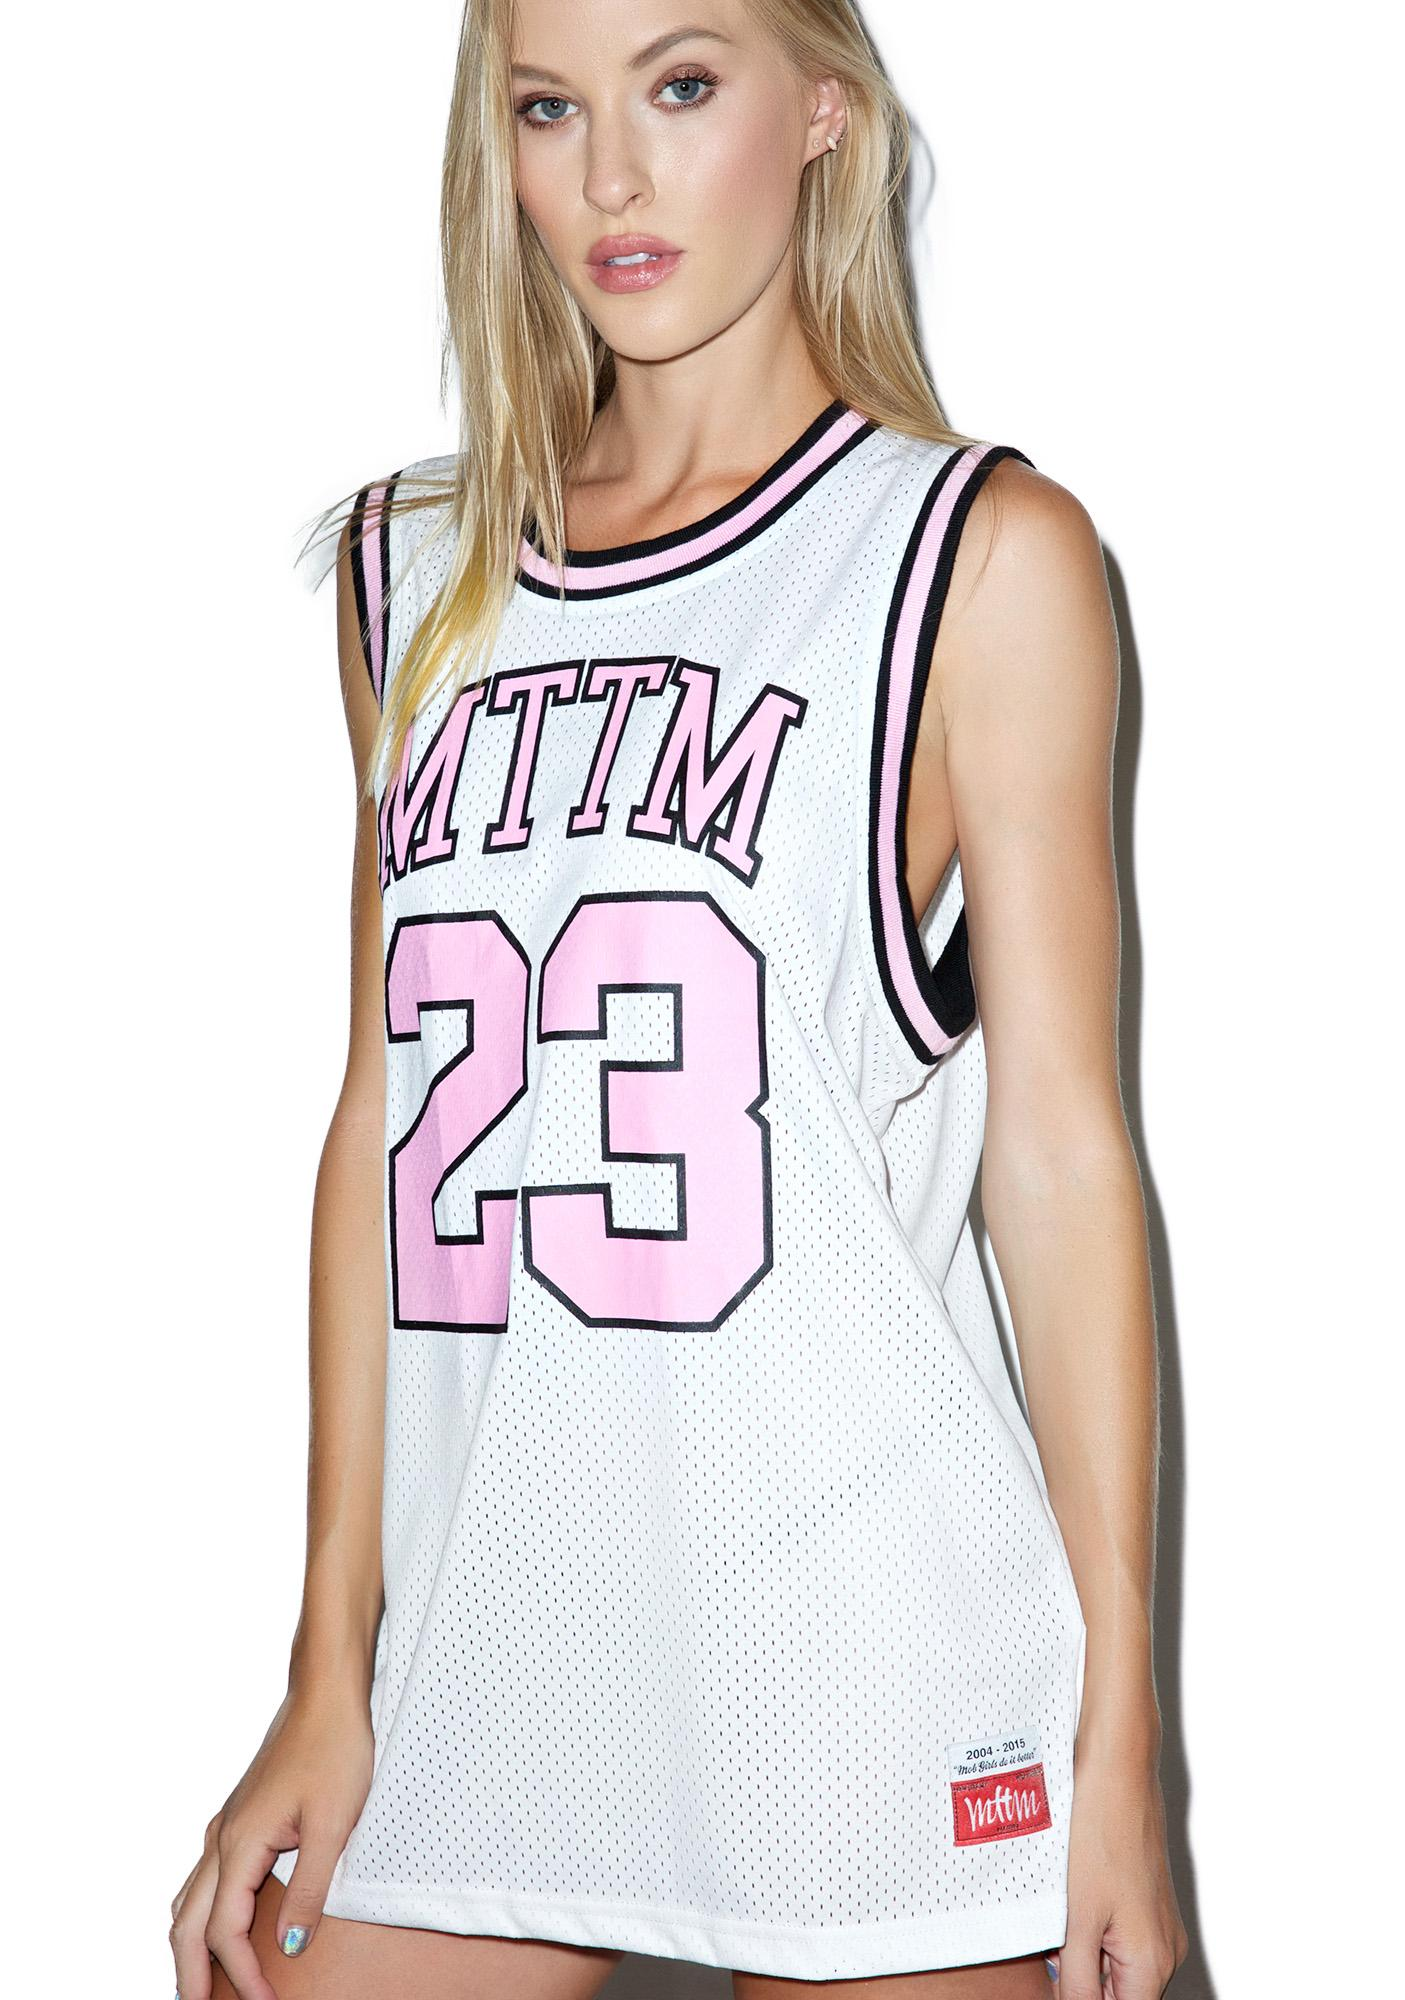 Married to the Mob Baller Jersey